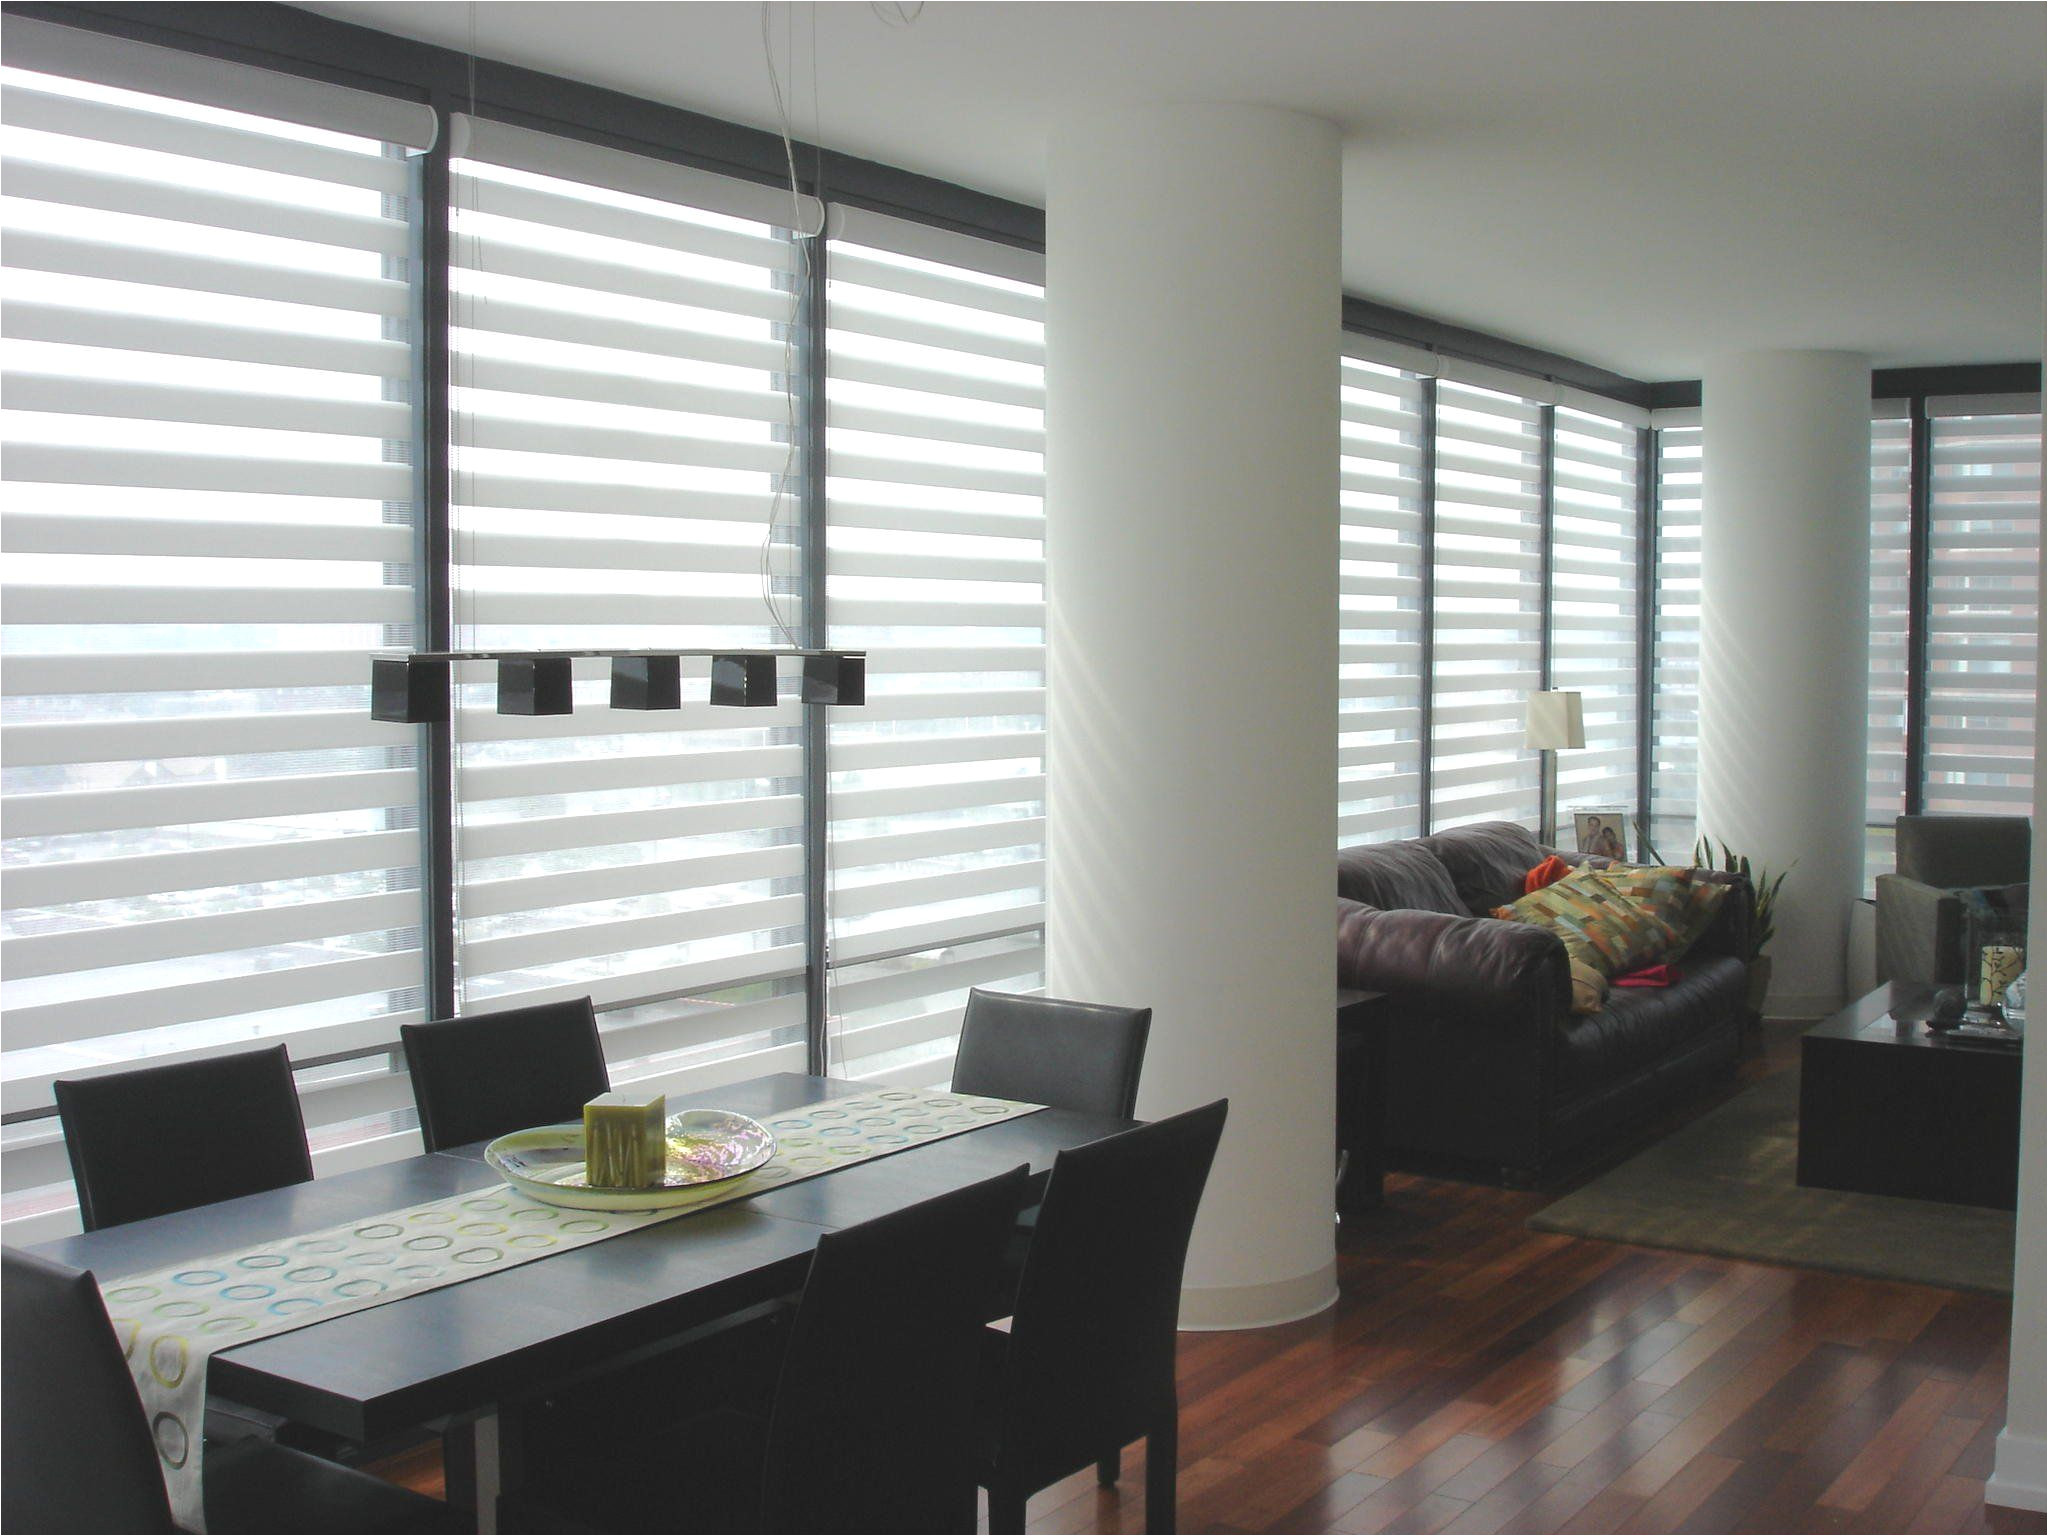 stunning award winning photo from budget blinds of northern nj via budget blinds of greater tampa